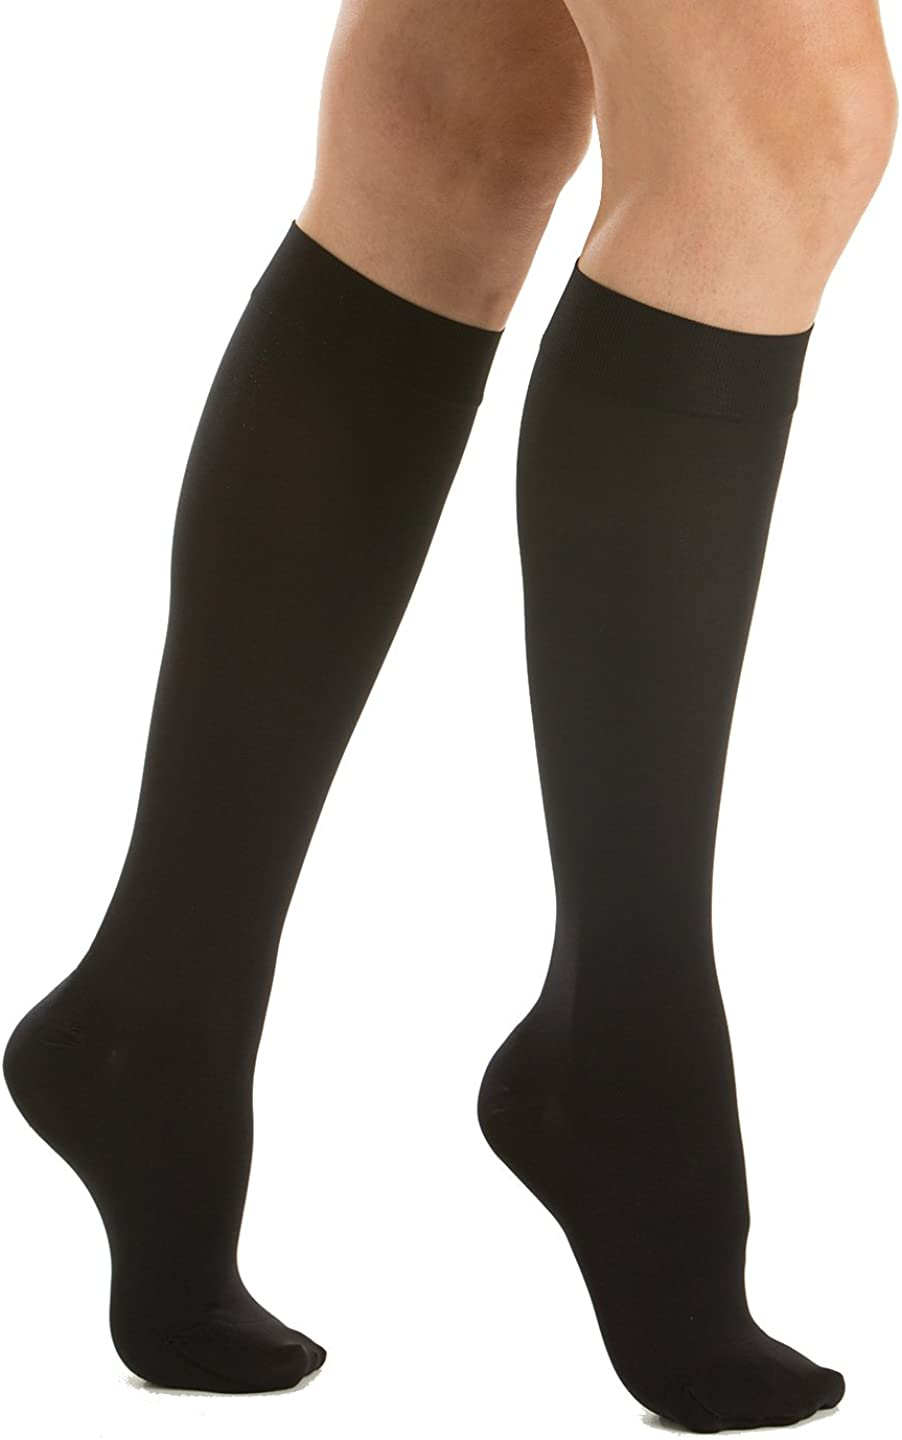 Relaxsan M1050 Cotton medical compression shop high knee Clas Product - socks